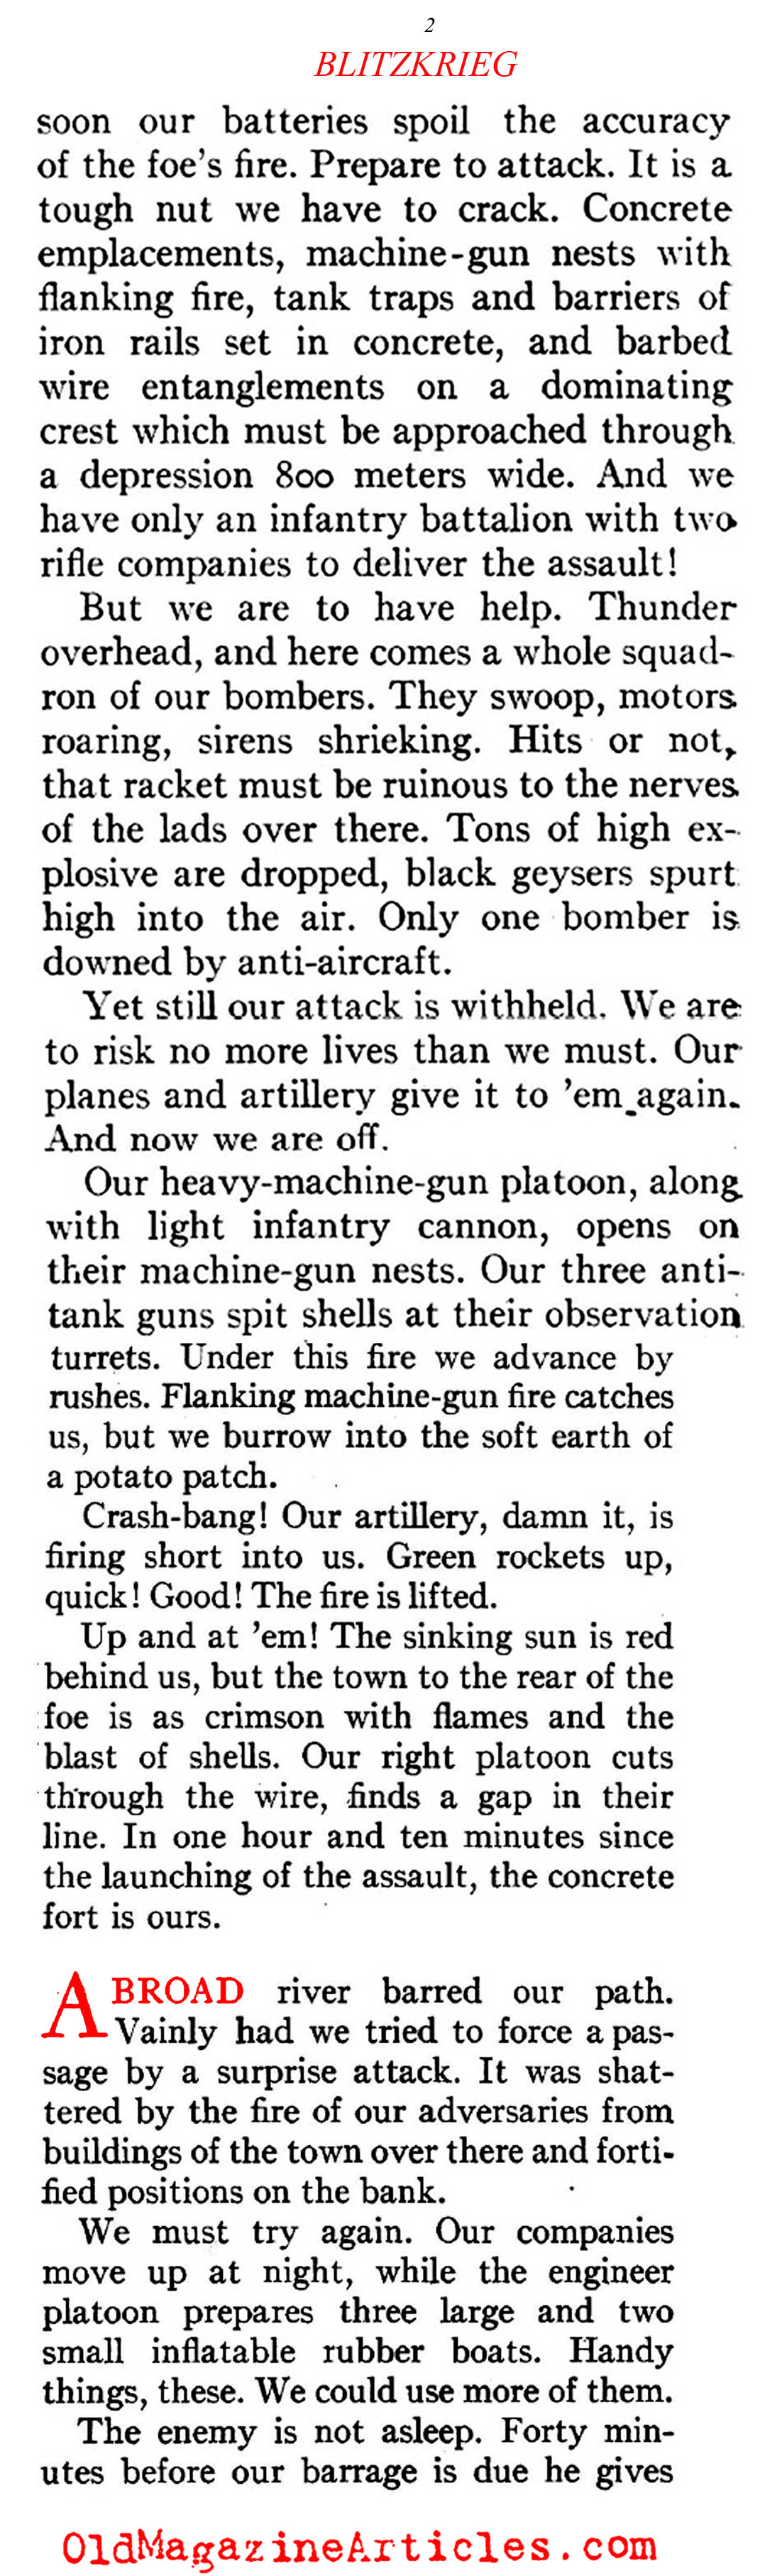 Blitzkrieg: In the Words of Nazi Officers   (American Legion Weekly, 1940)